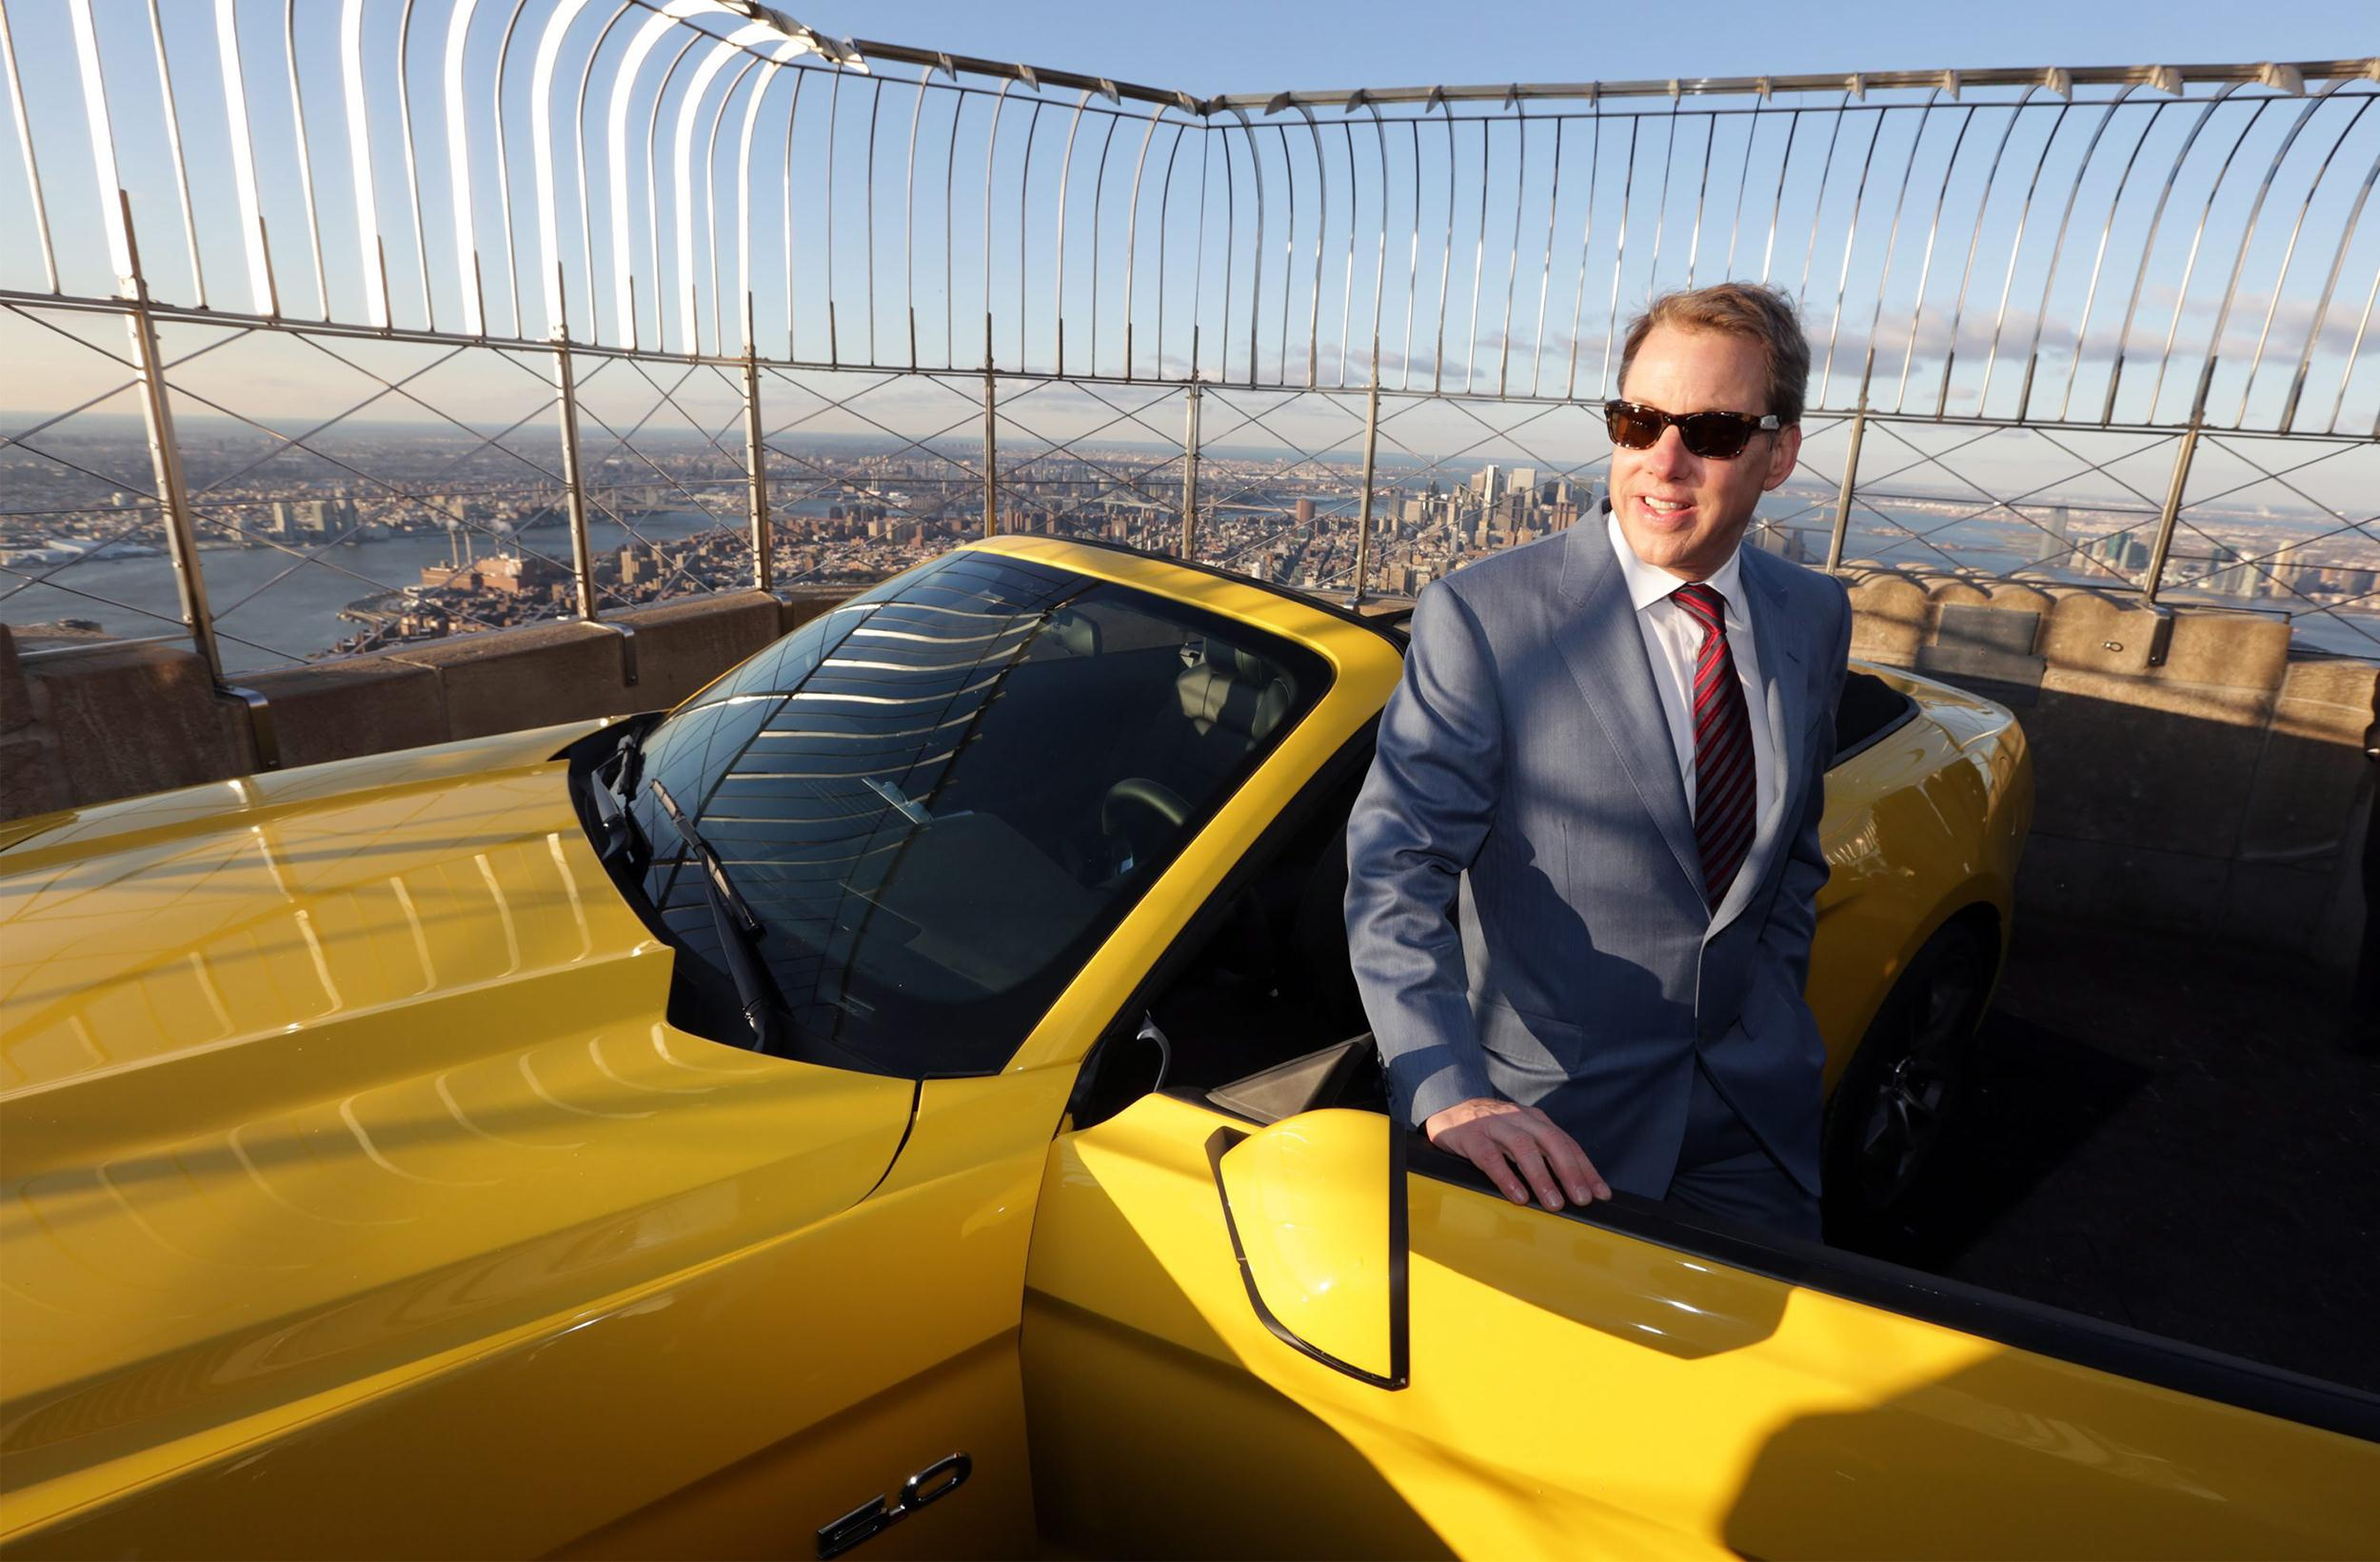 Image: Ford Motor Company Executive Chairman Bill Ford poses next to a fully assembled 2015 Mustang convertible on display after an unveiling to honor 50 years of the Ford Mustang at the Empire State Building